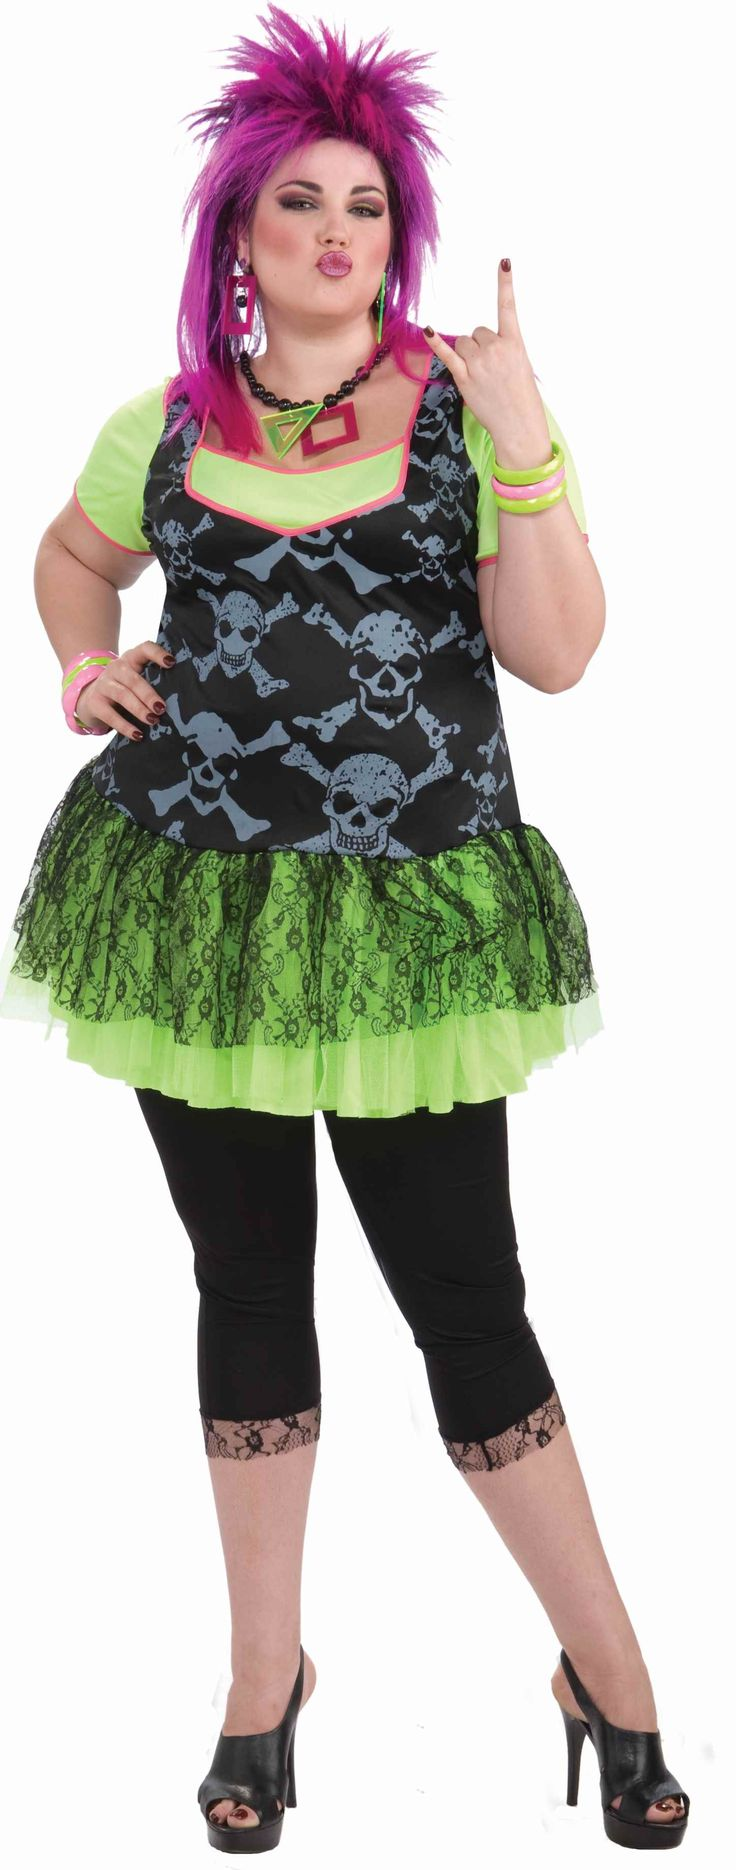 80s Punk Lady Plus Size Halloween Costume - Calgary, Alberta. Get ready to rock in this 80s to the max punk Halloween costume. This costume is a one piece dress with bright neon crinoline and undershirt lined in neon pink. The bodice is a flattering black print with grey skulls and the crinoline has a black lace over it. There are black leggings included with lace cuffs. Add your own accessories for the next 80s Rock Band party and Halloween.